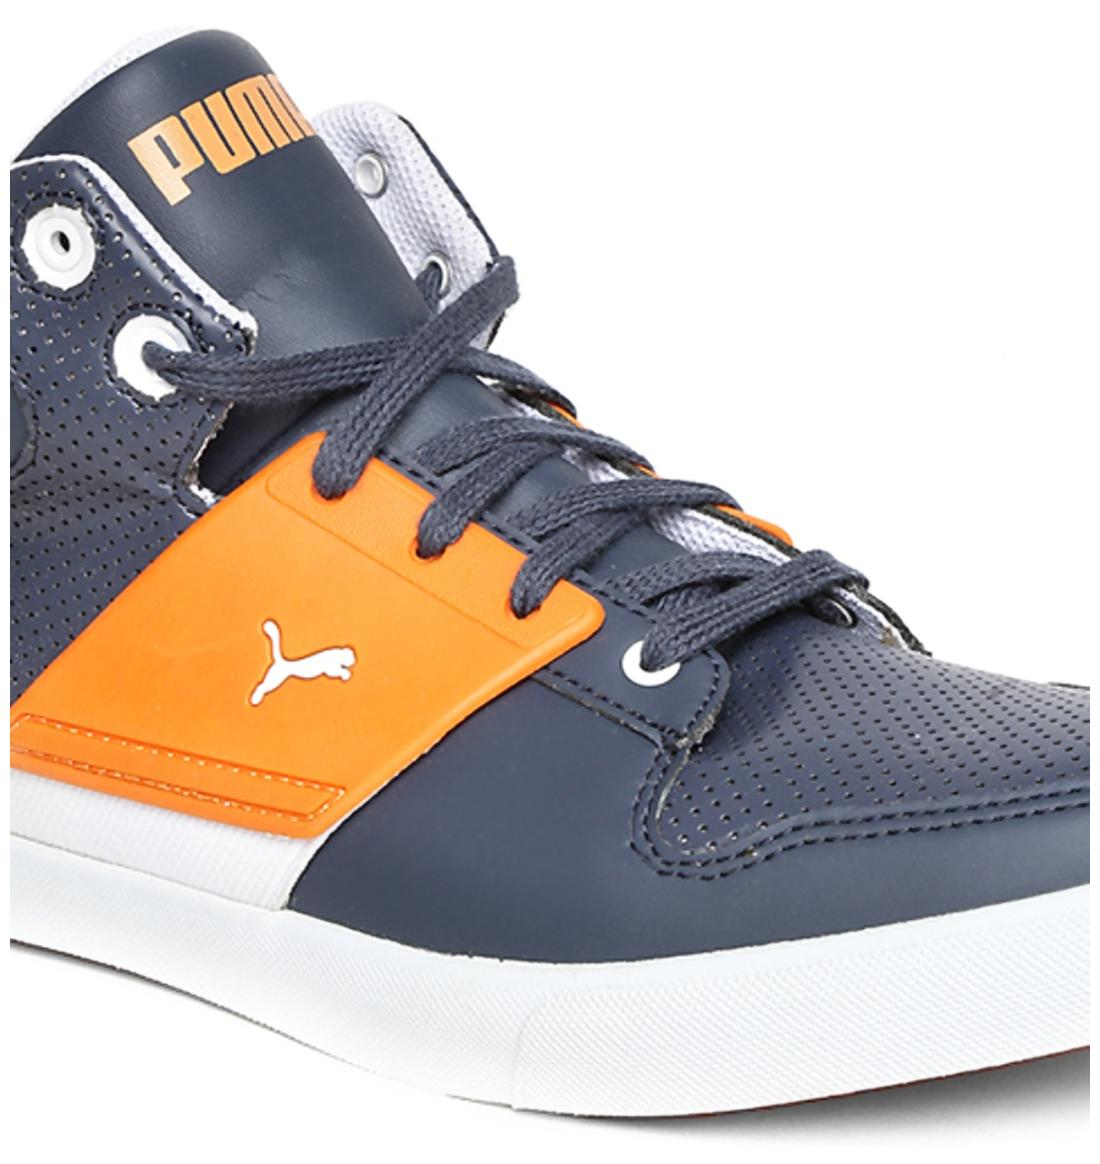 c251367fd3cf80 Buy Puma Unisex Blue Sneakers - 36136701 Online at Low Prices in India -  Paytmmall.com